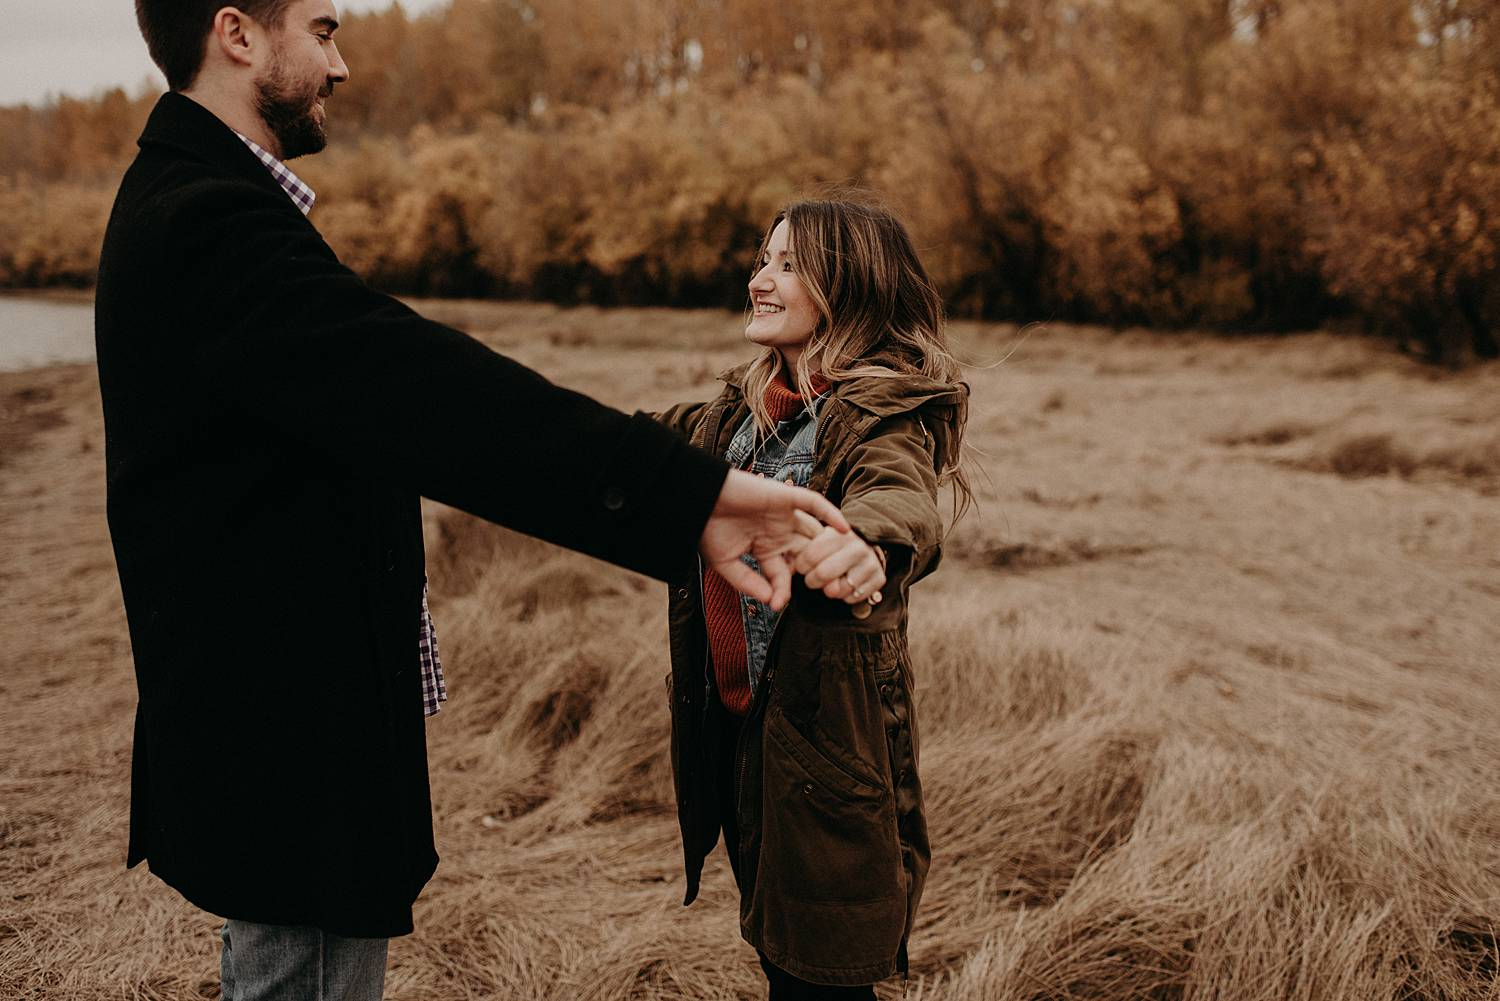 vancouver_lake_engagement_session_jake_and_jessica_1030.jpg